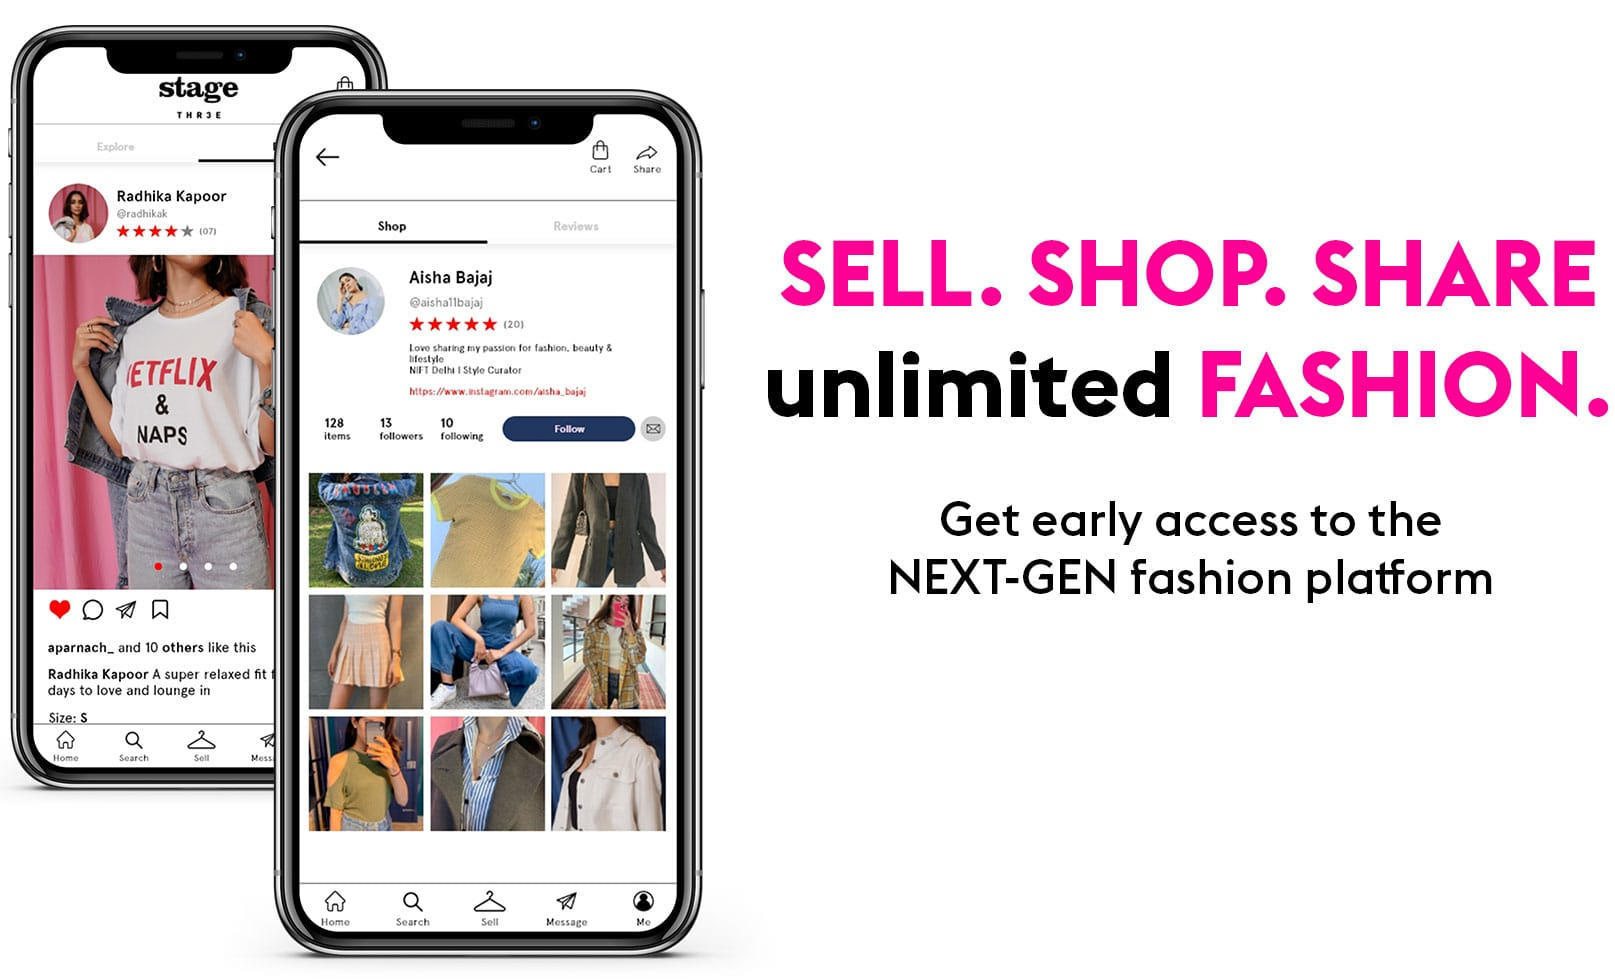 Sell. Shop. Share unlimited fashion